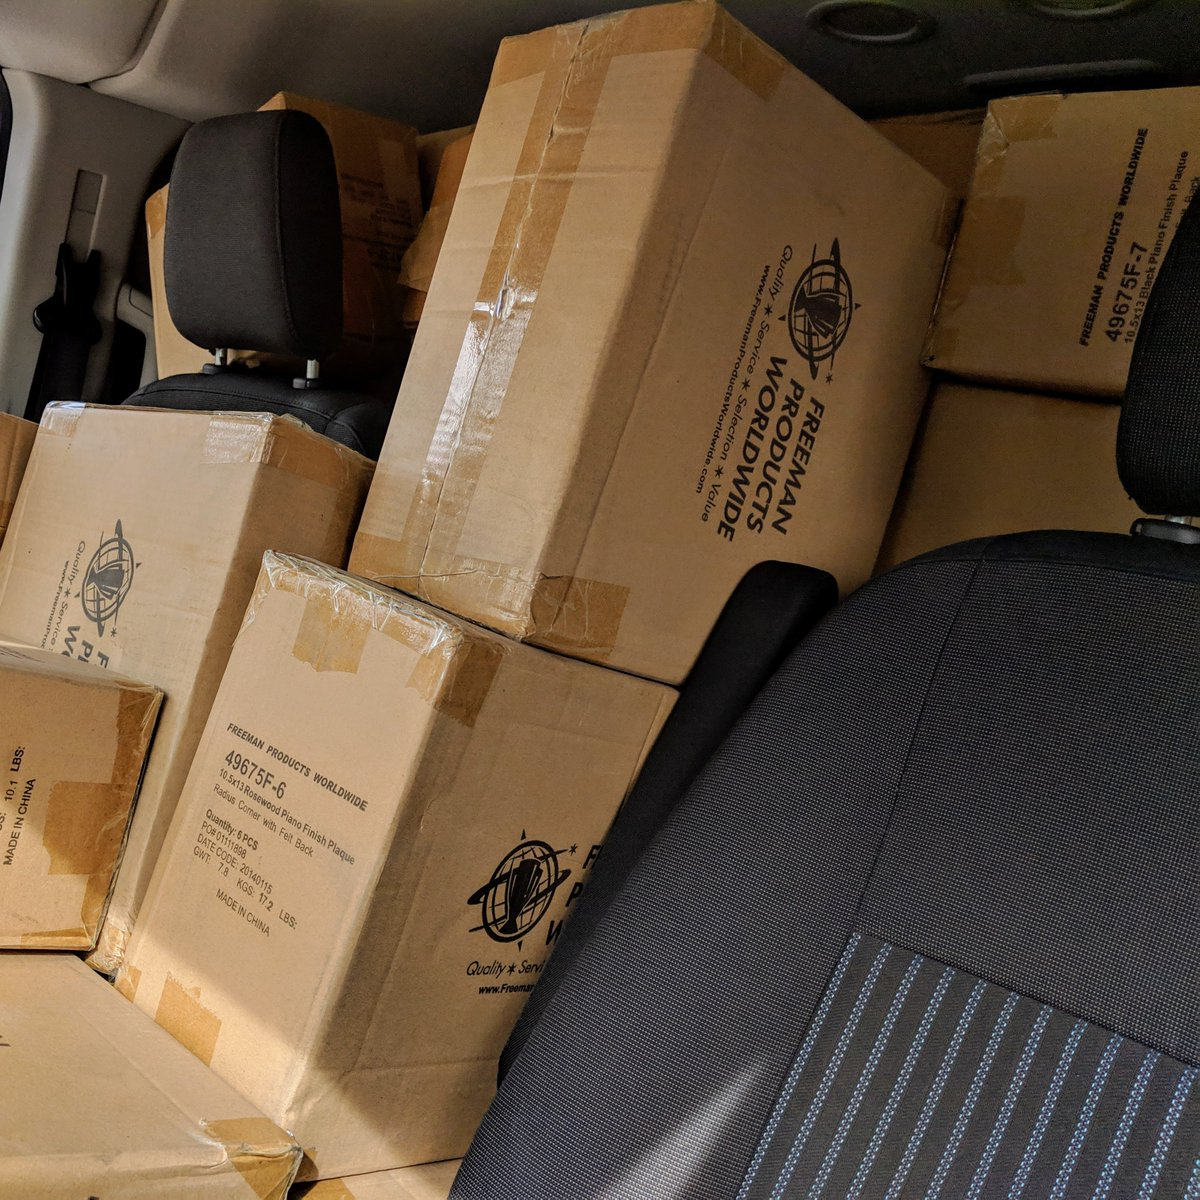 Van stacked to the brim with boxes